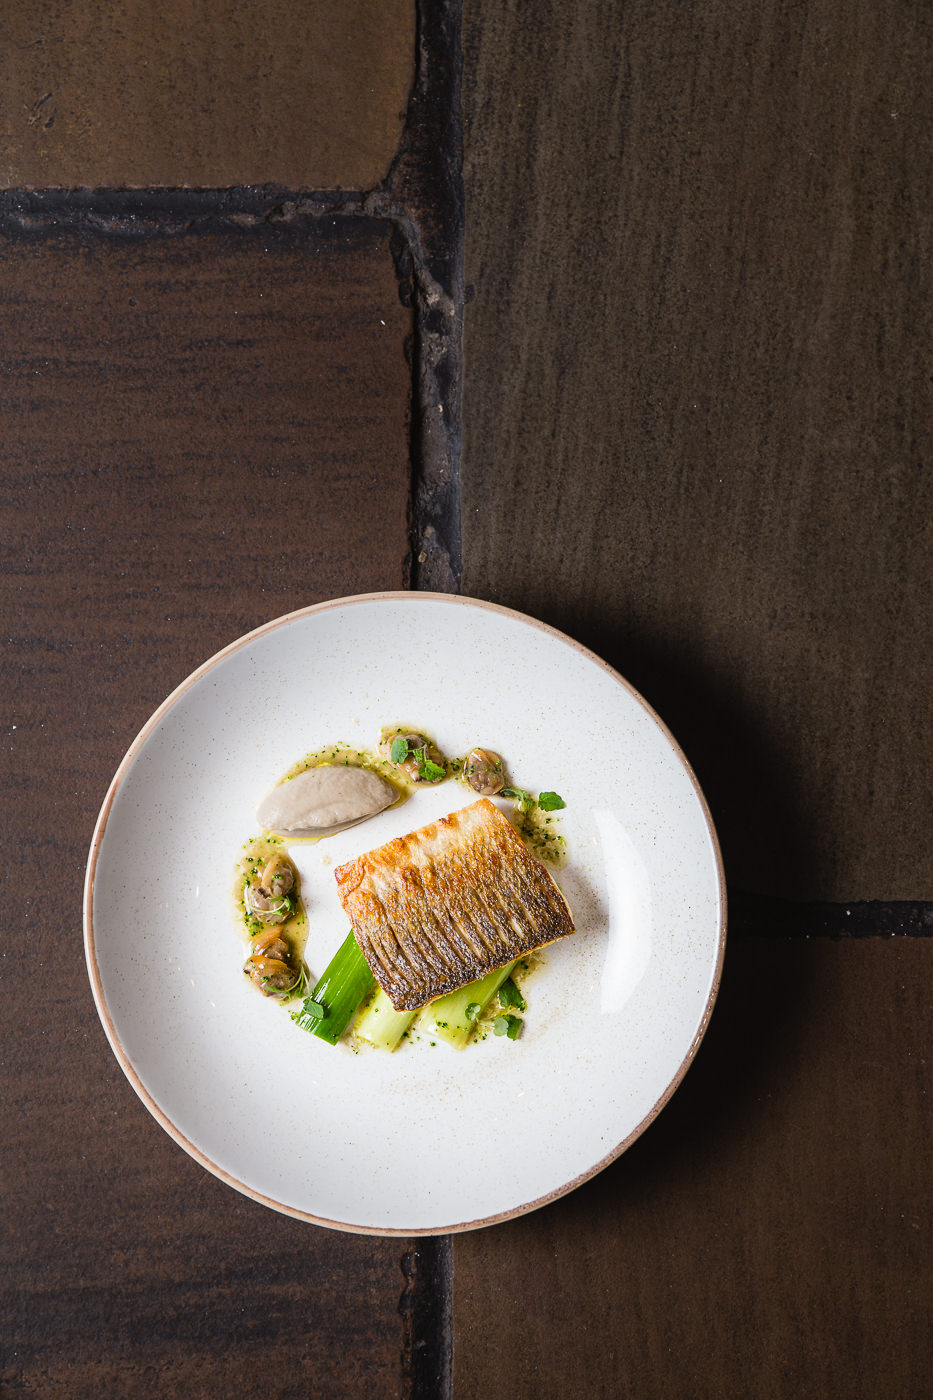 Top down shot of restaurant style cod loin sitting on leaks with mushrooms and a sauce. The white plate is on the intersection of dark, old, stone floor tiles